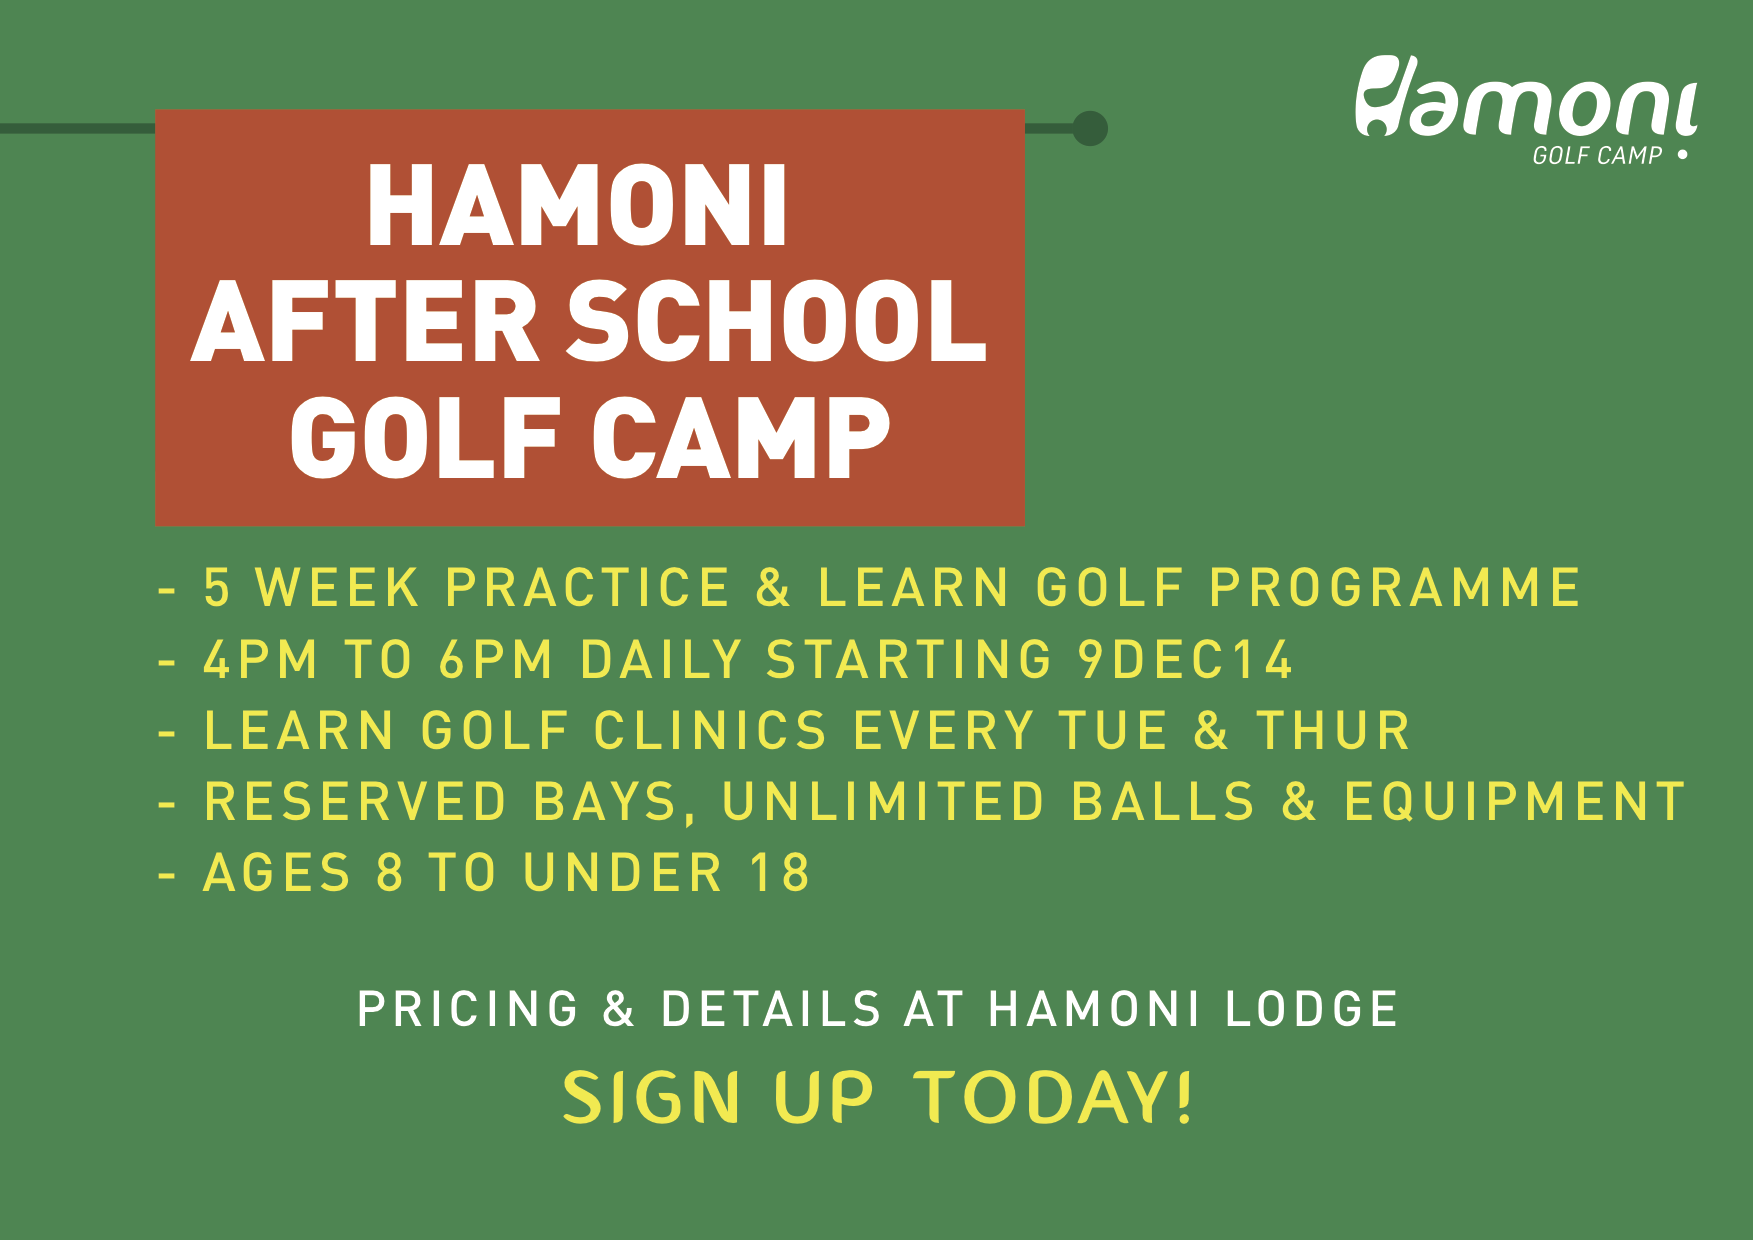 HGC's After School Golf Camp